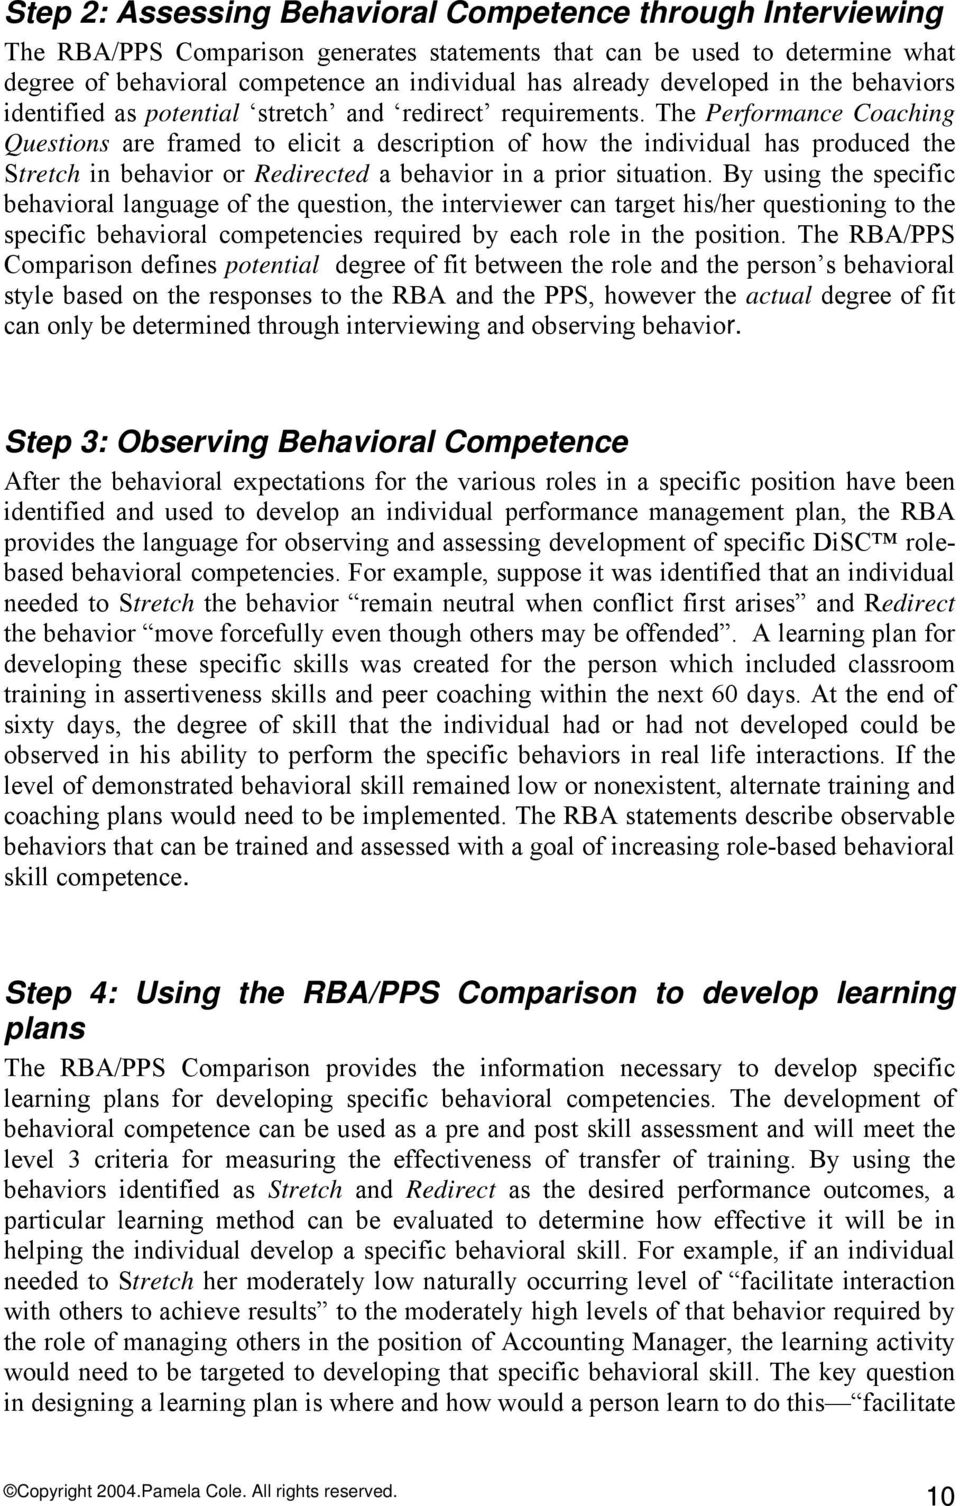 The Performance Coaching Questions are framed to elicit a description of how the individual has produced the Stretch in behavior or Redirected a behavior in a prior situation.